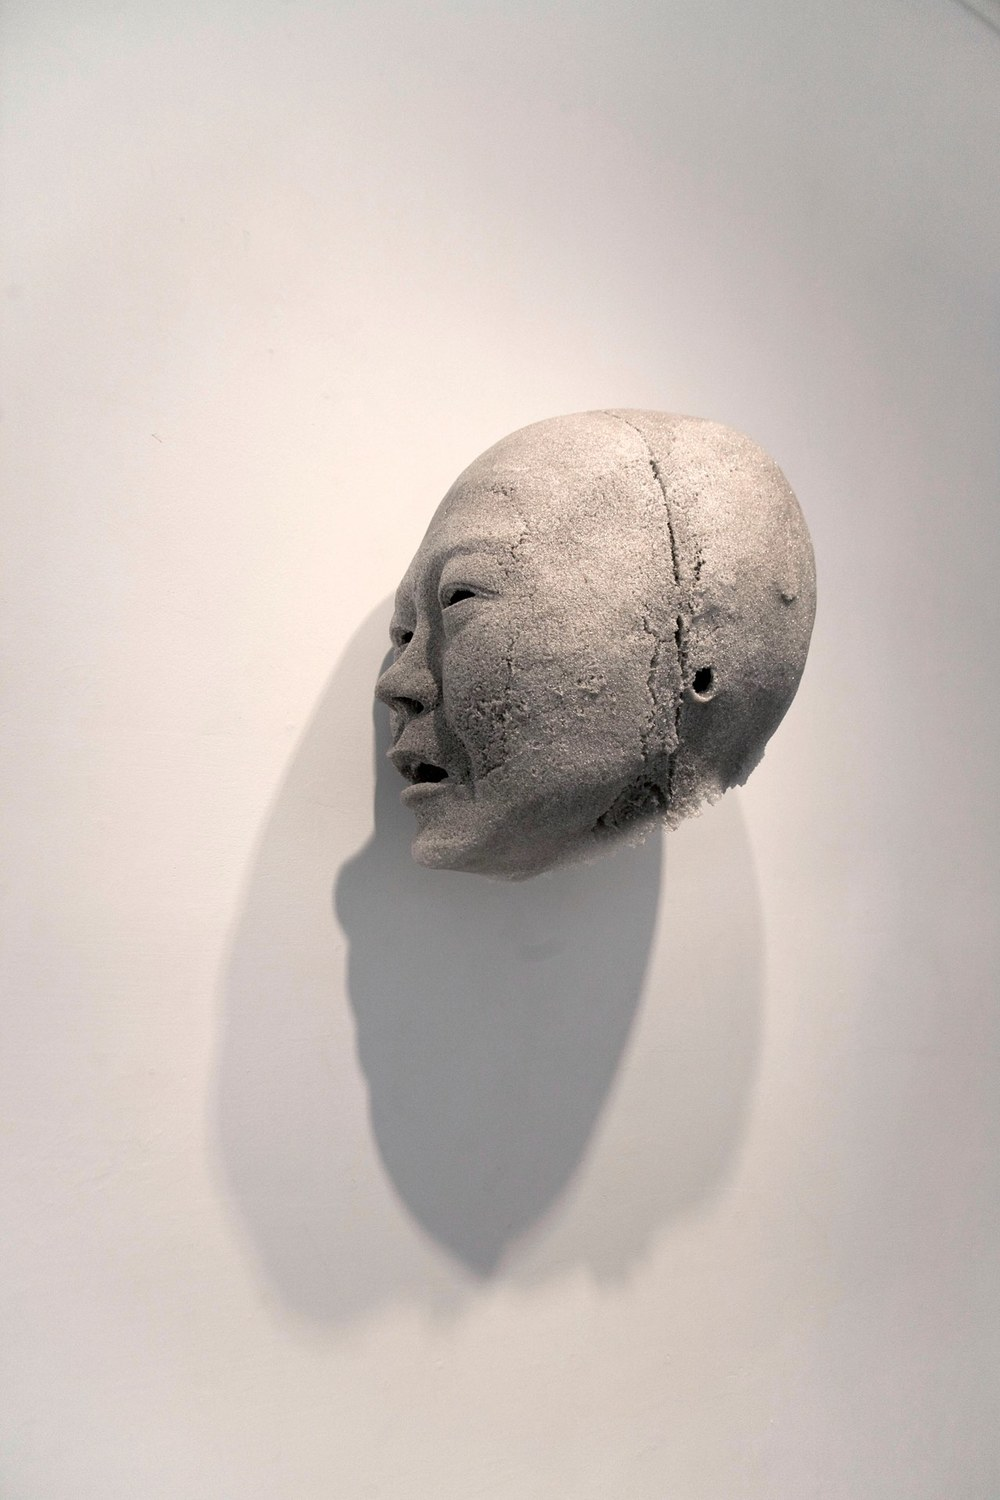 Carla on the Wall (Empty Series), 2006 kiln fired sintered glass approximately 14 x 8 x 10 inches